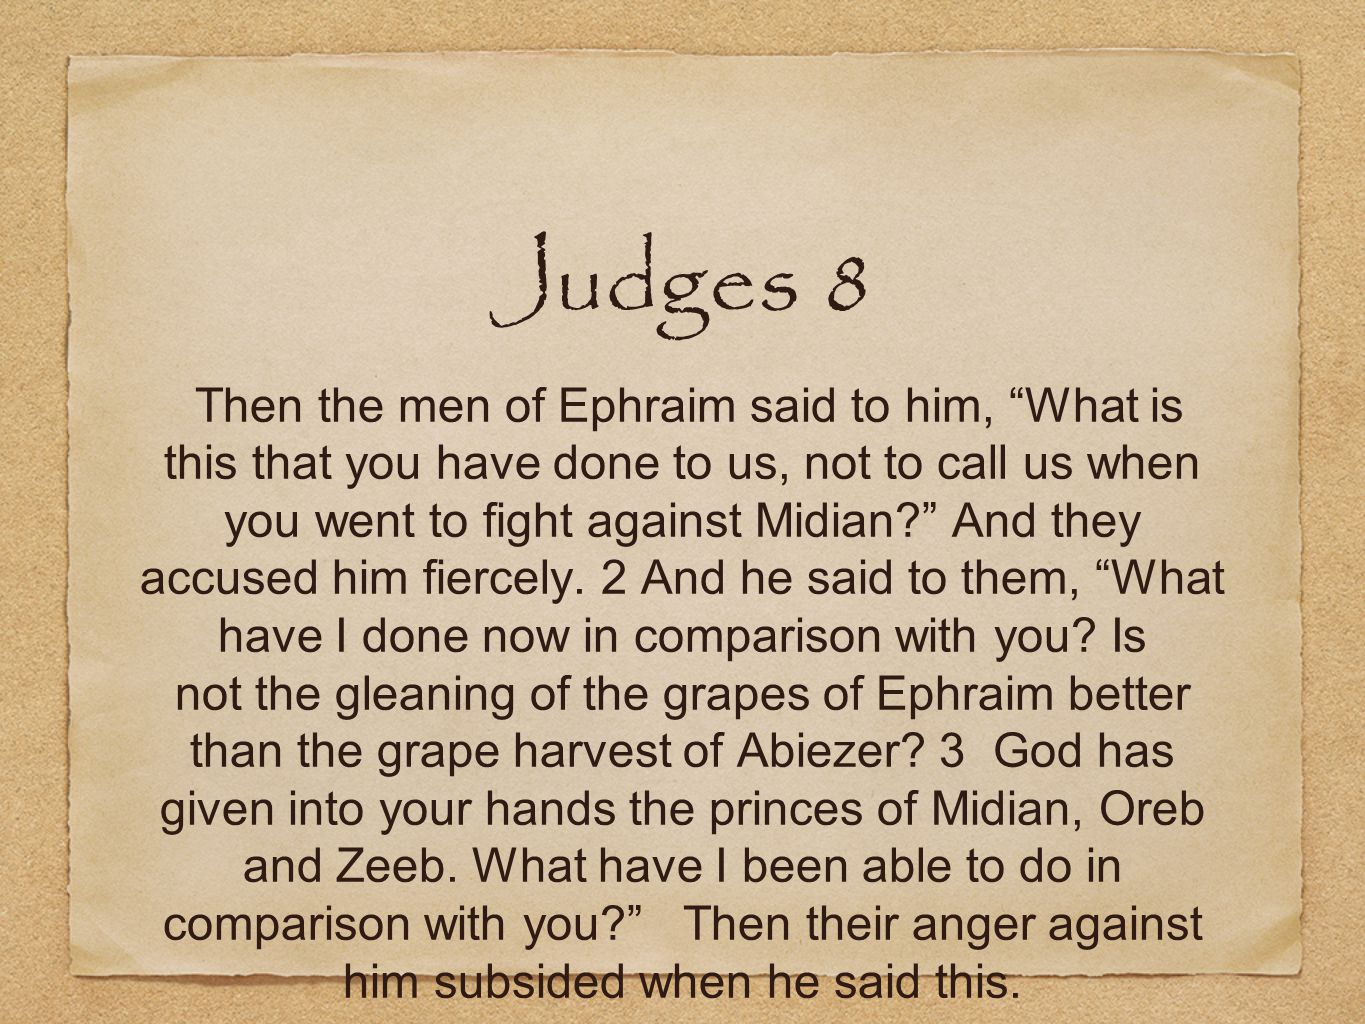 Judges 8 Then the men of Ephraim said to him, What is this that you have done to us, not to call us when you went to fight against Midian And they accused him fiercely.